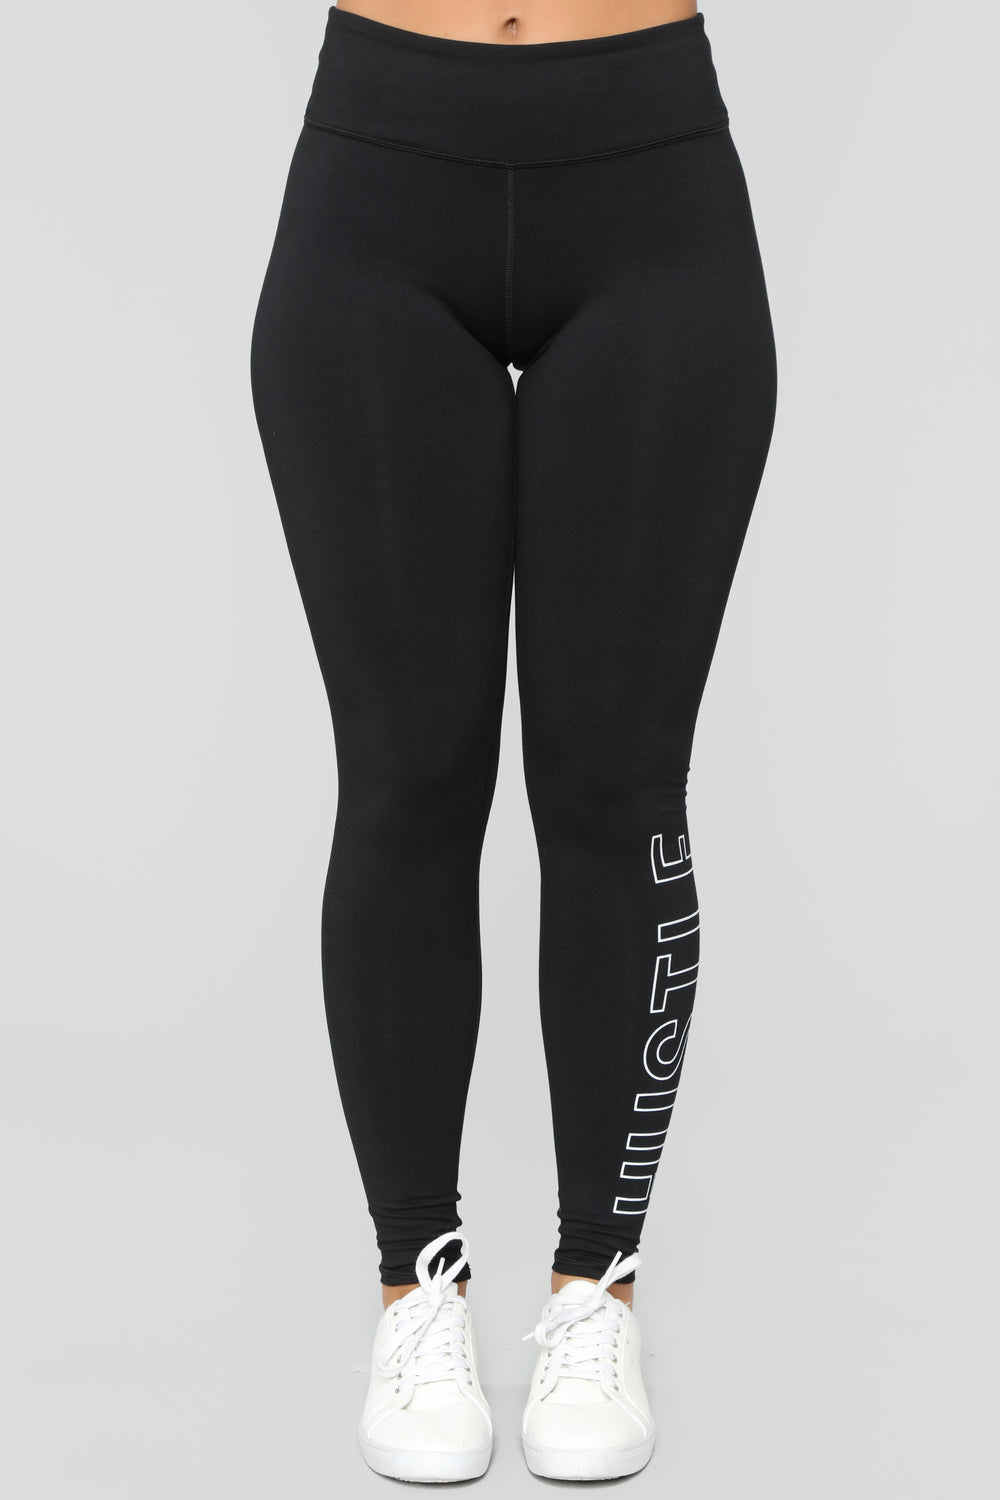 Kayla Performance Leggings - Black